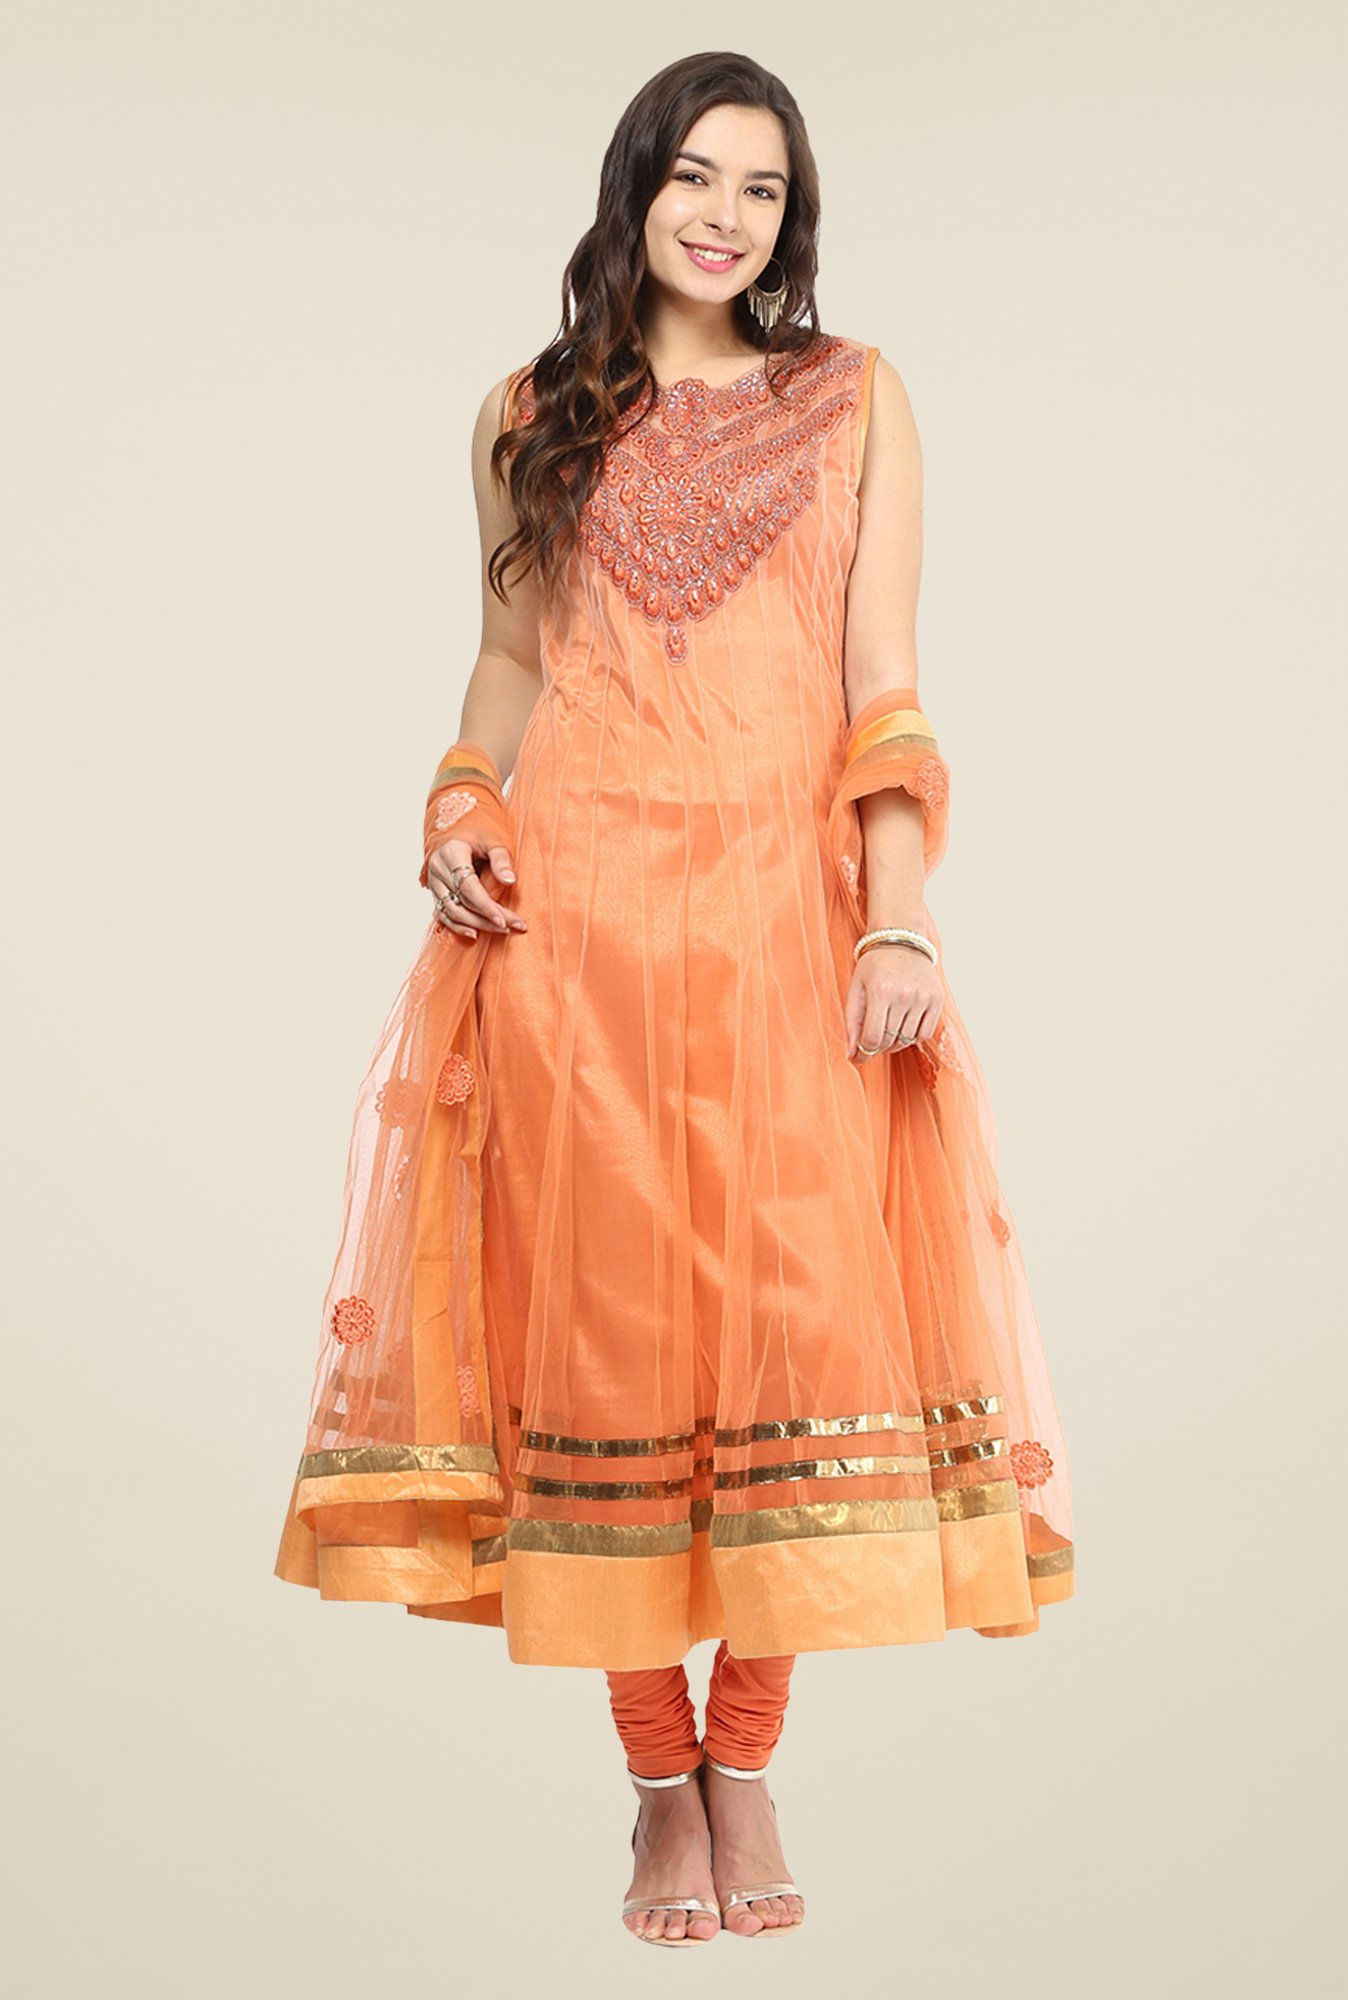 Yepme Mealany Peach Salwar Suit Set